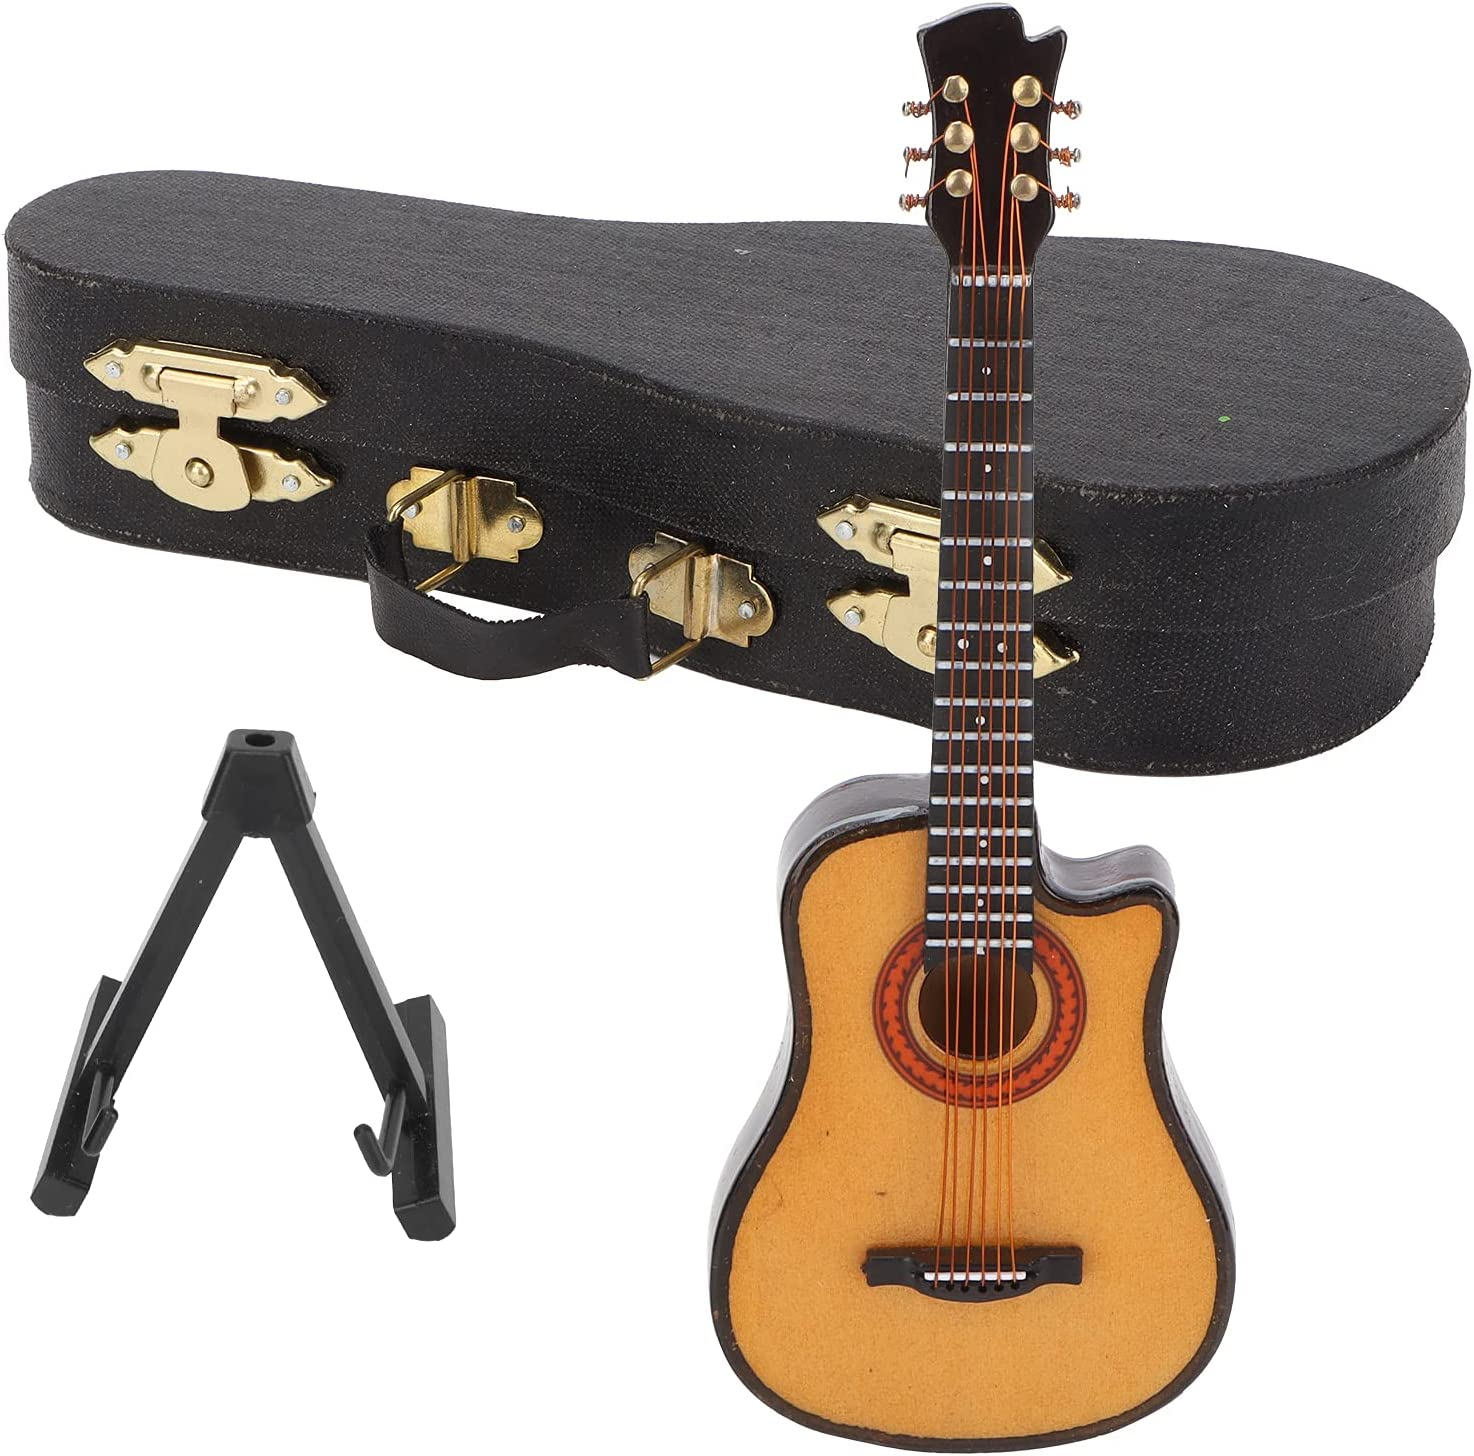 Cheap SALE Start Electric Guitar Model Portable Mini Miniatur Musical Free shipping on posting reviews Instrument